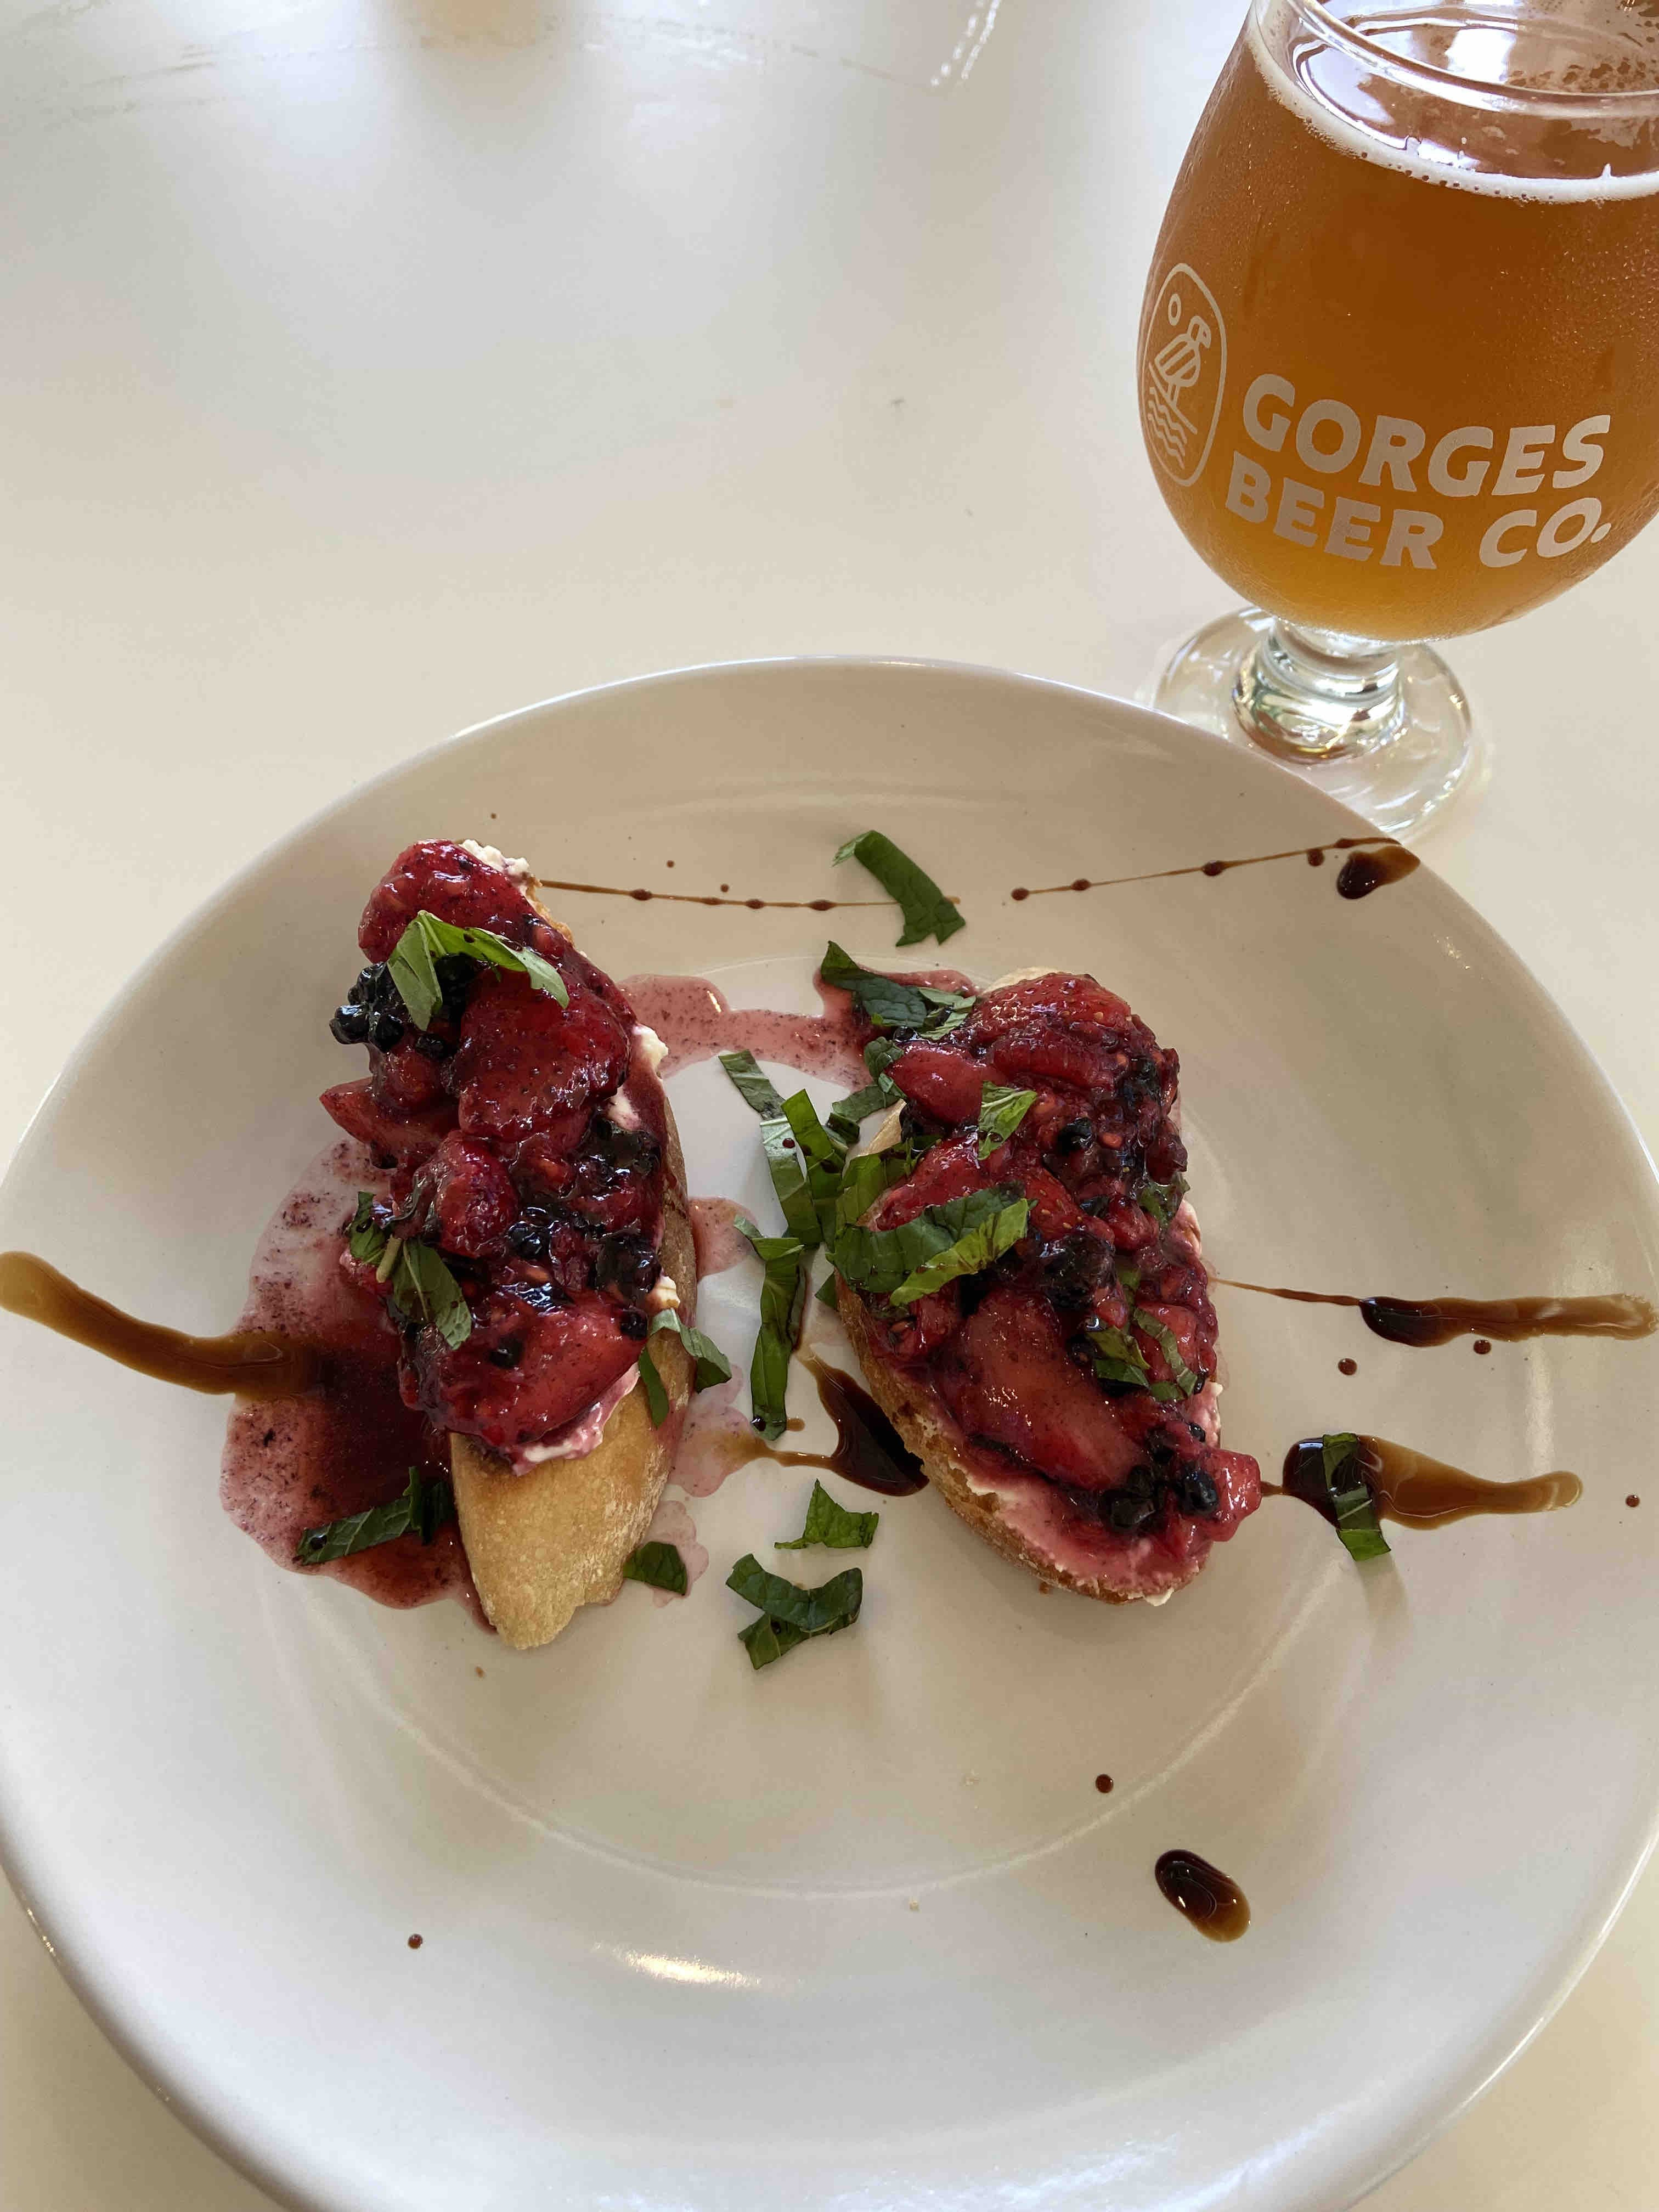 Triple Berry Bruschetta at Gorges Beer Co. was one of our favorite dishes.